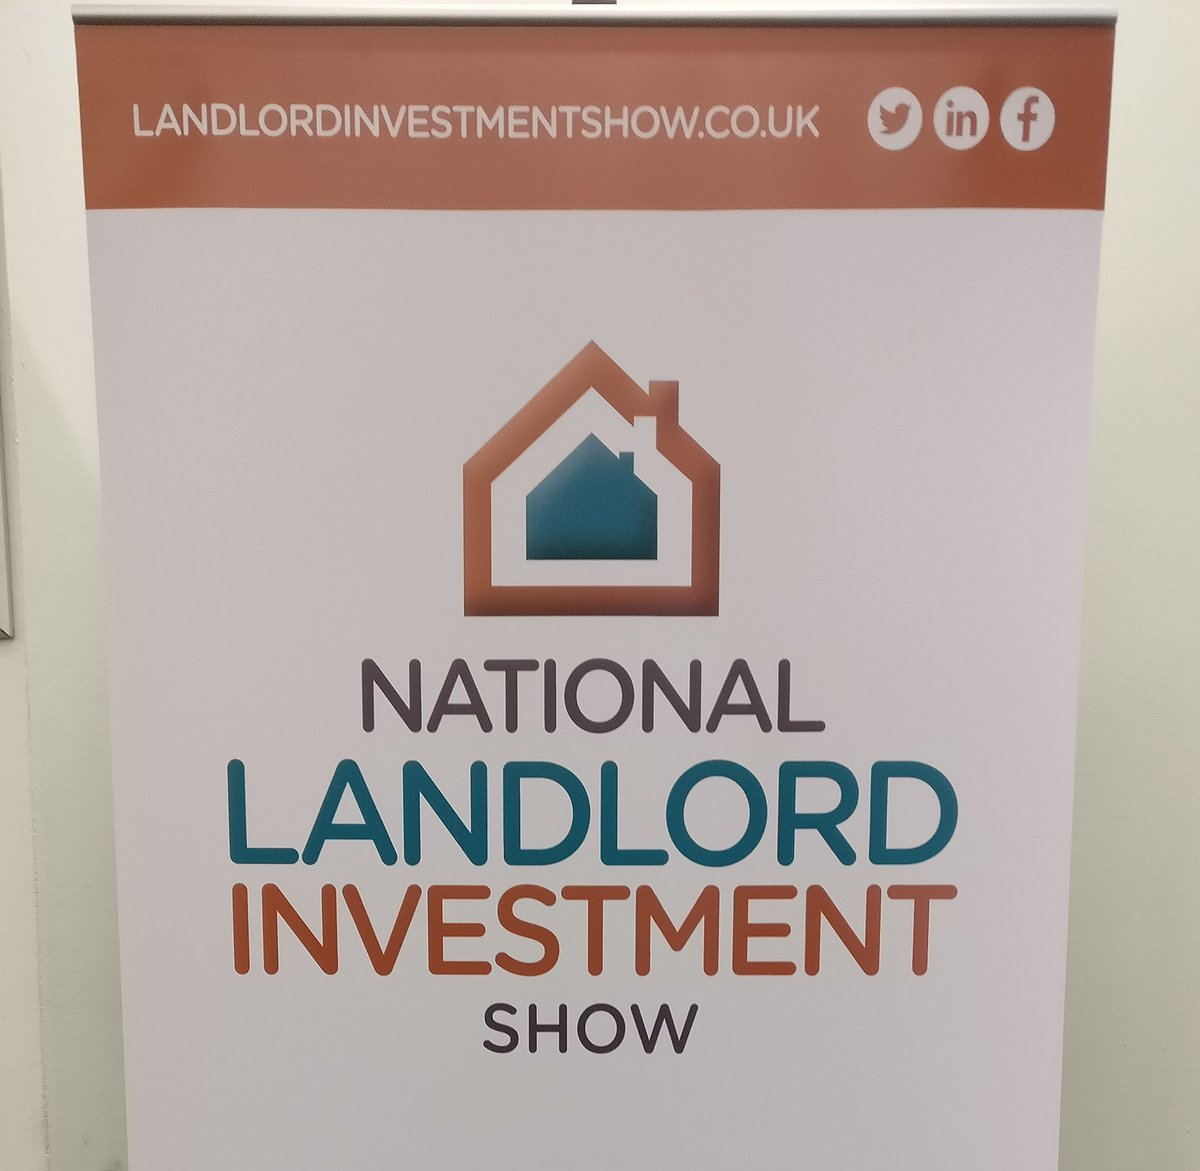 Landlord Investment Show banner